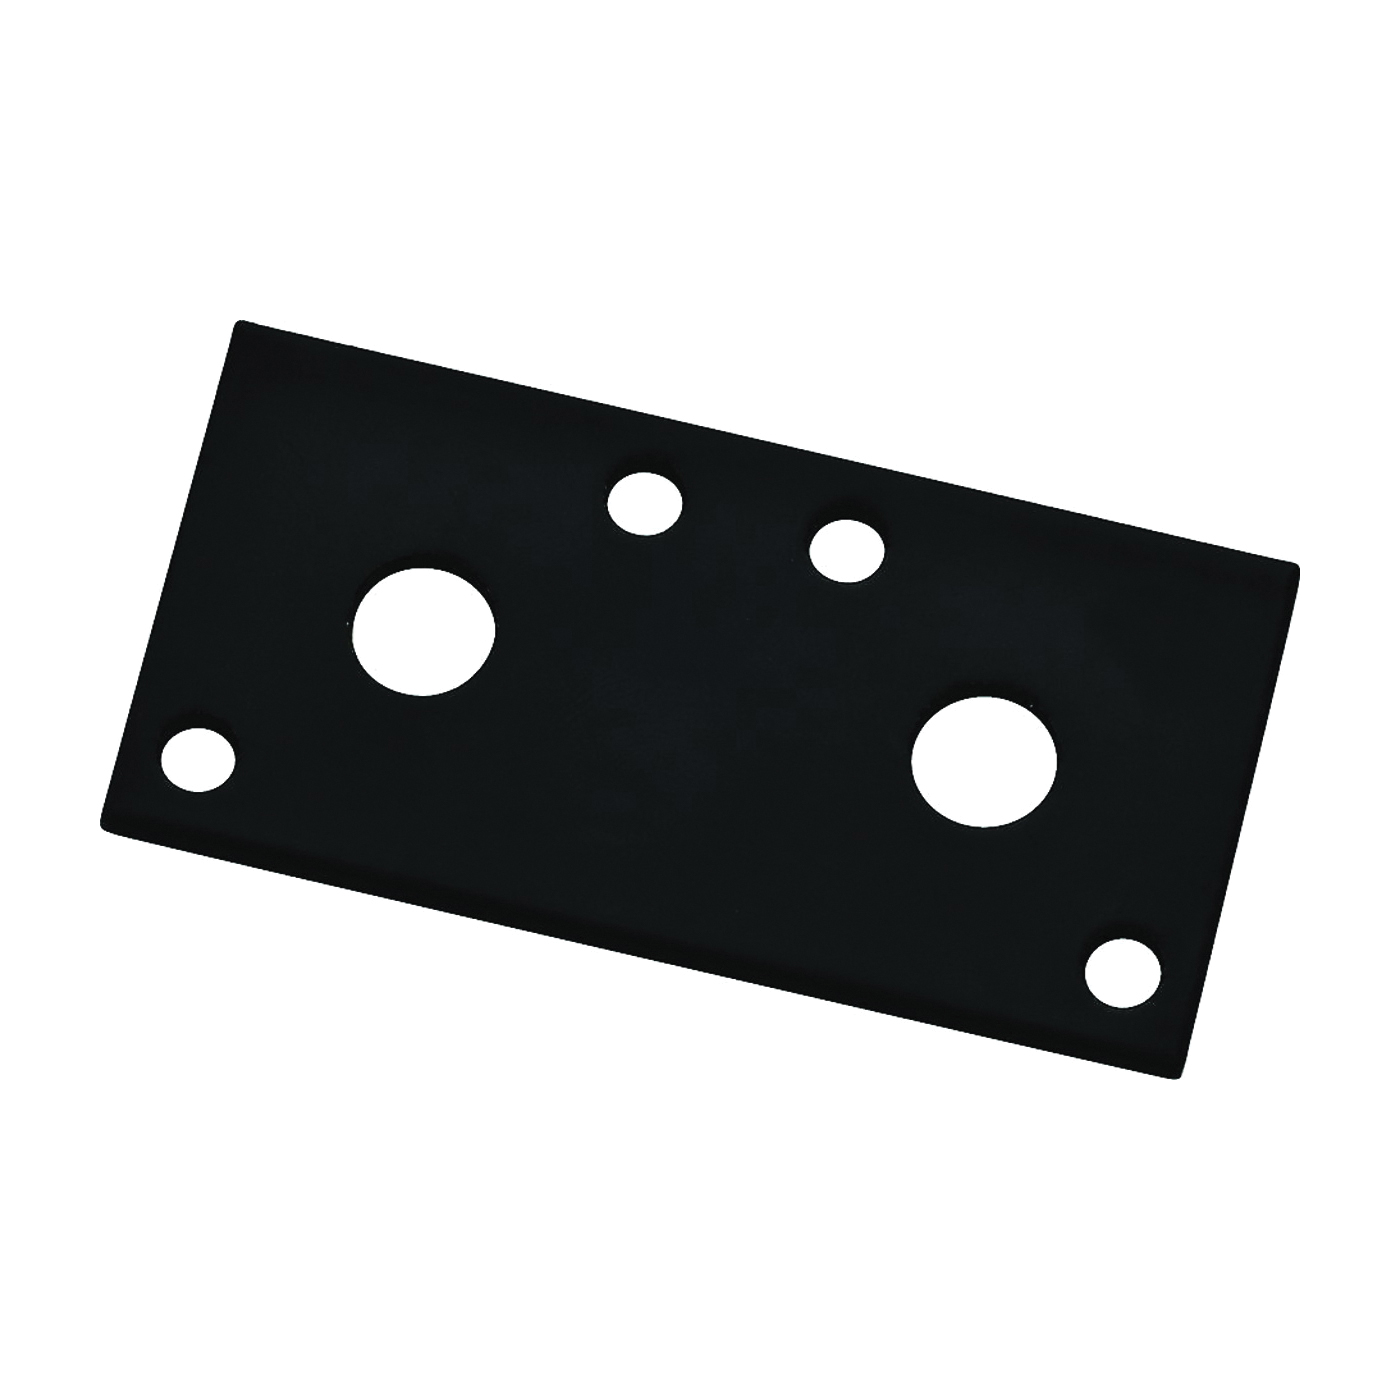 Picture of National Hardware 351454 Mending Plate, 3 in L, 1.3 in W, 1/8 Gauge, Steel, Powder-Coated